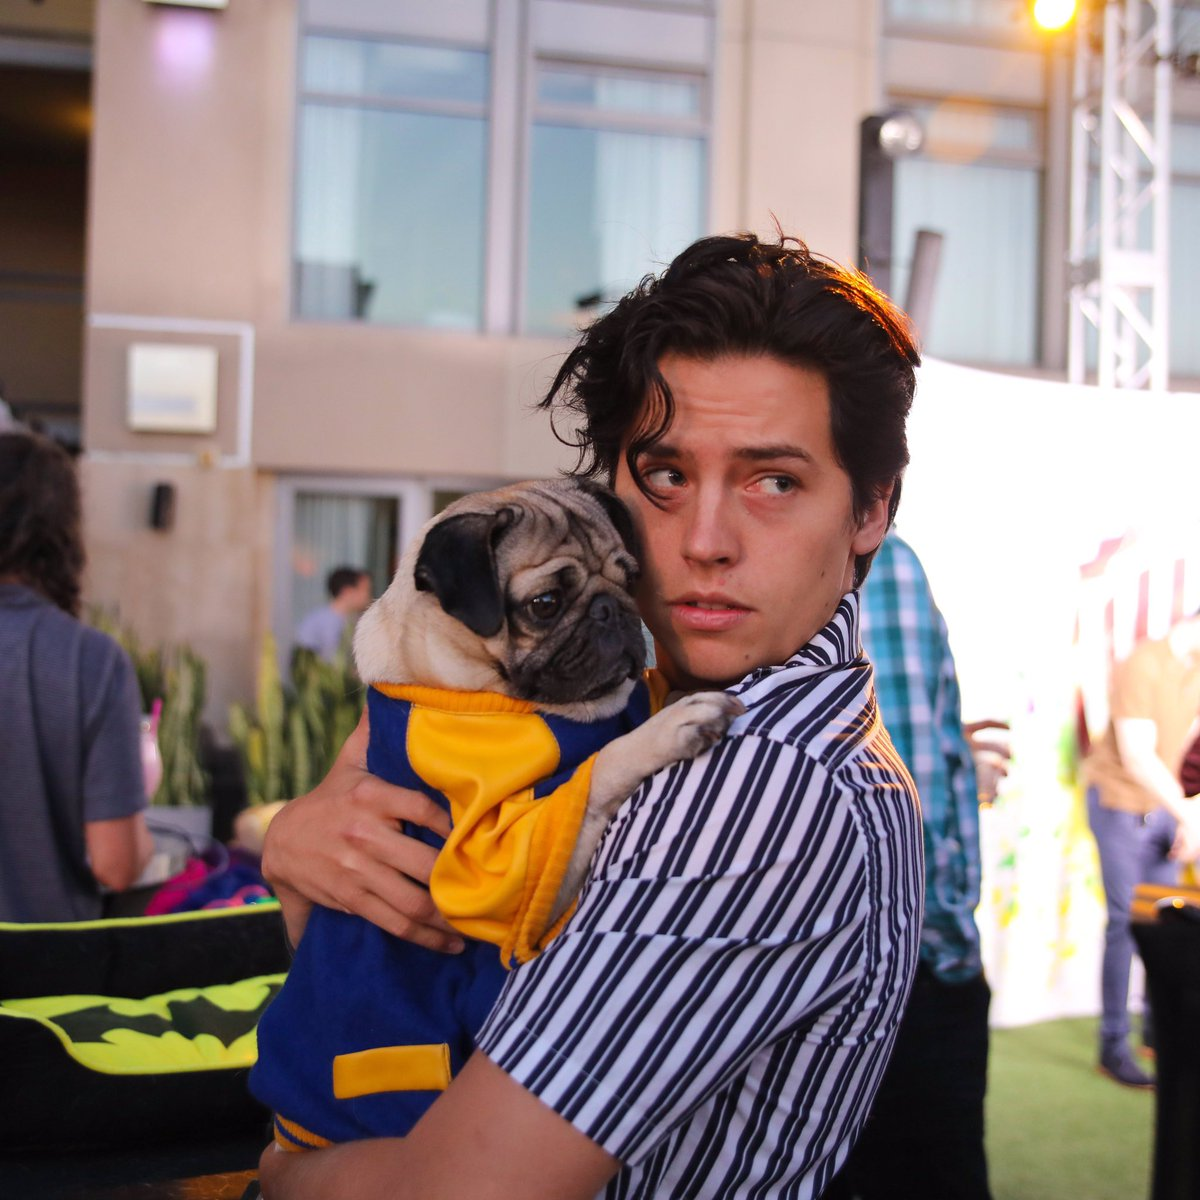 The bromance of our generation @colesprouse